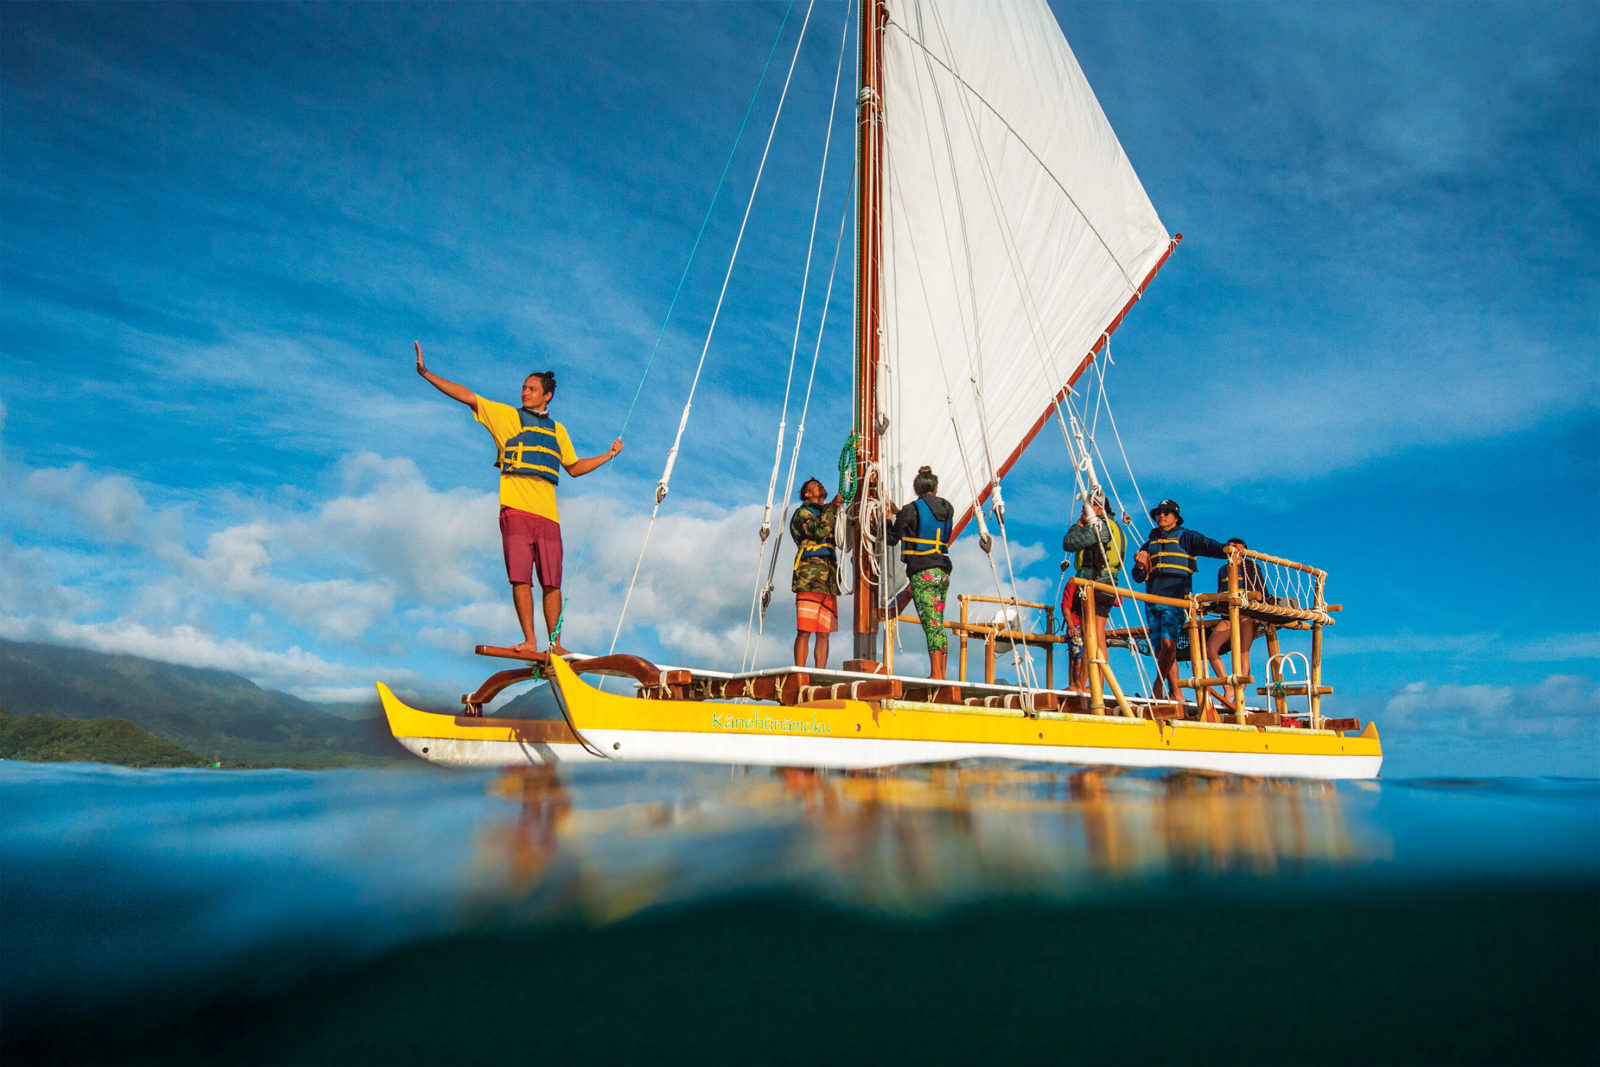 Photography by Elyse Butler Mallams. Based at Kaʻalaea in Kāneʻohe Bay, Kānehūnāmoku, a 29ft double hull sailing canoe is a hands-on, dynamic, and living classroom for students of all ages.